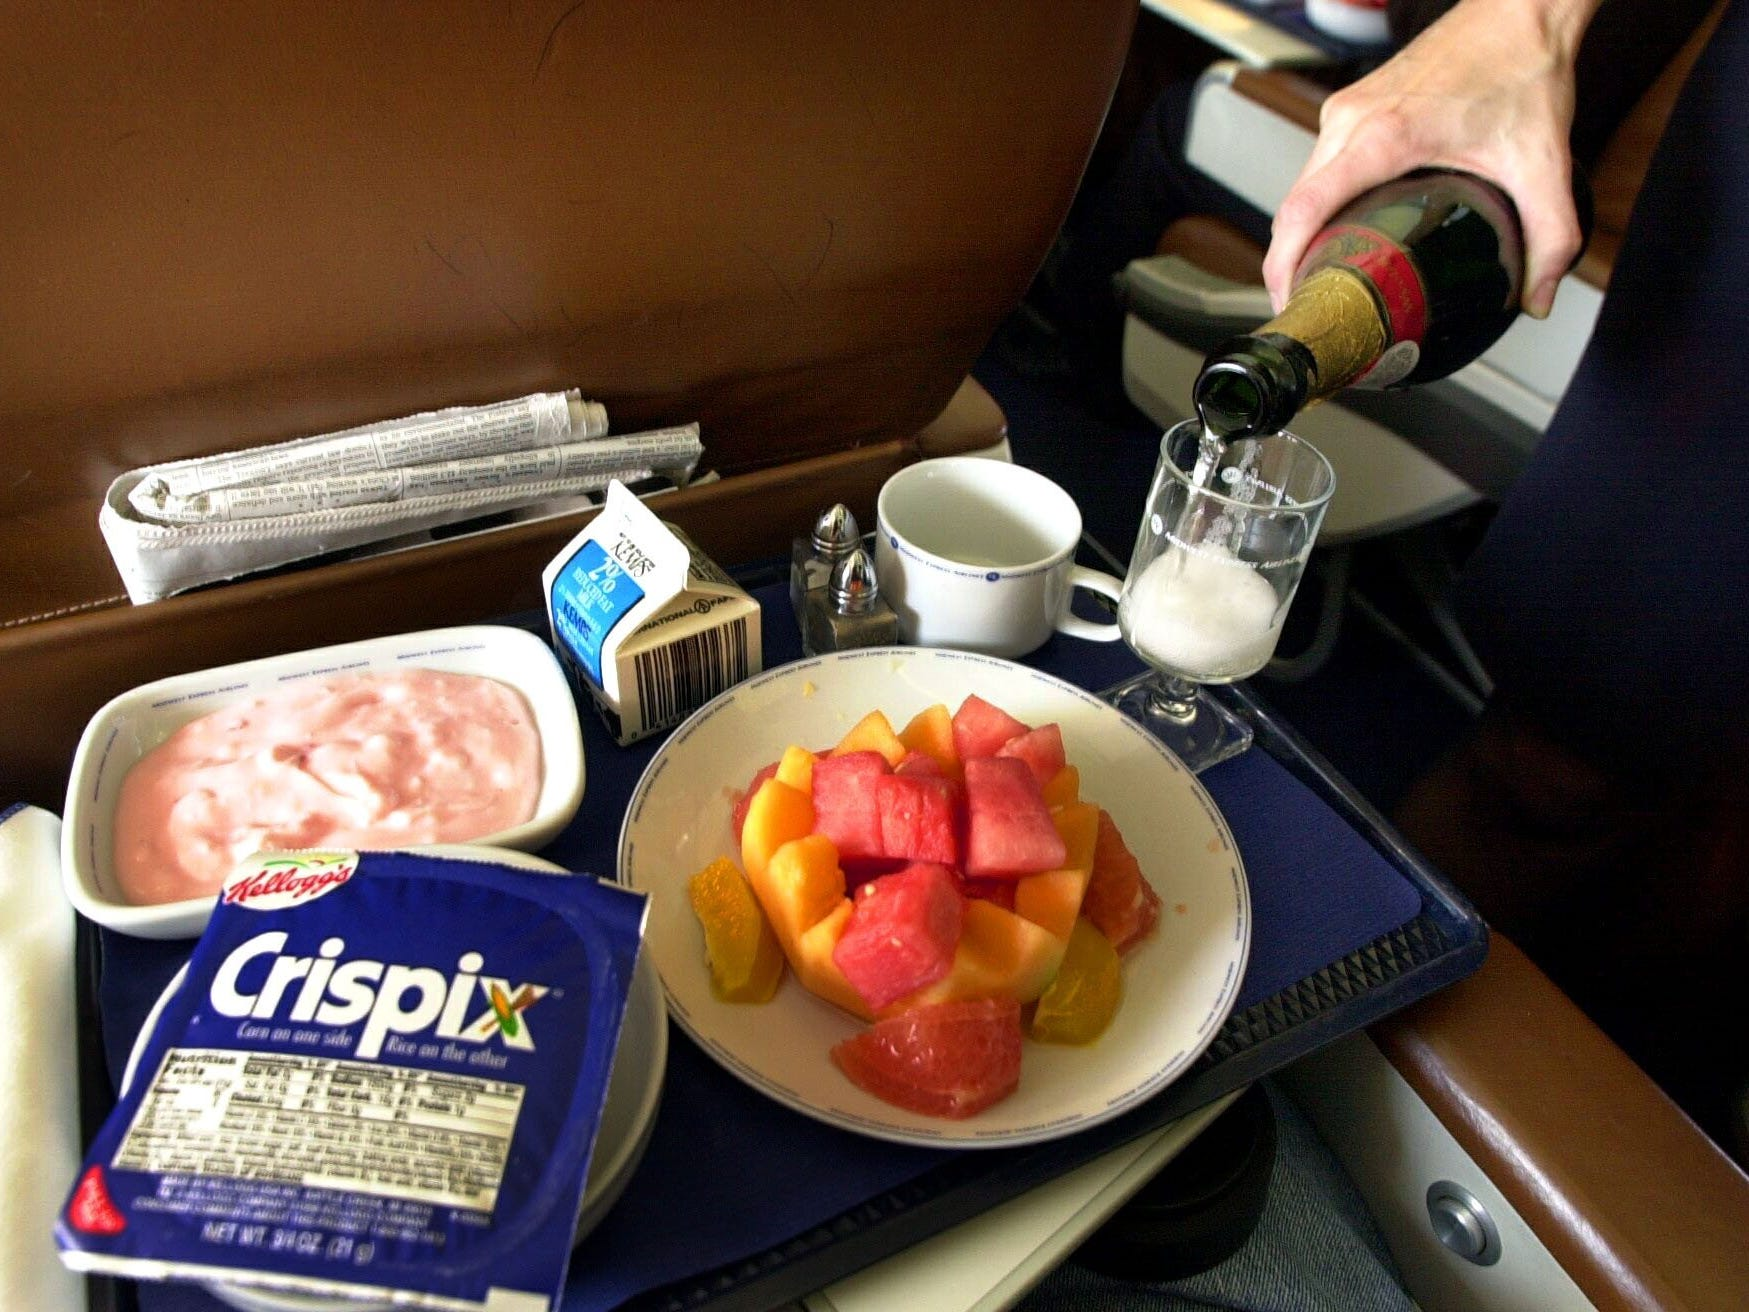 Excellant meals with complimentary wine or champagne is served on Midwest Express Airlines February 23, 2000.